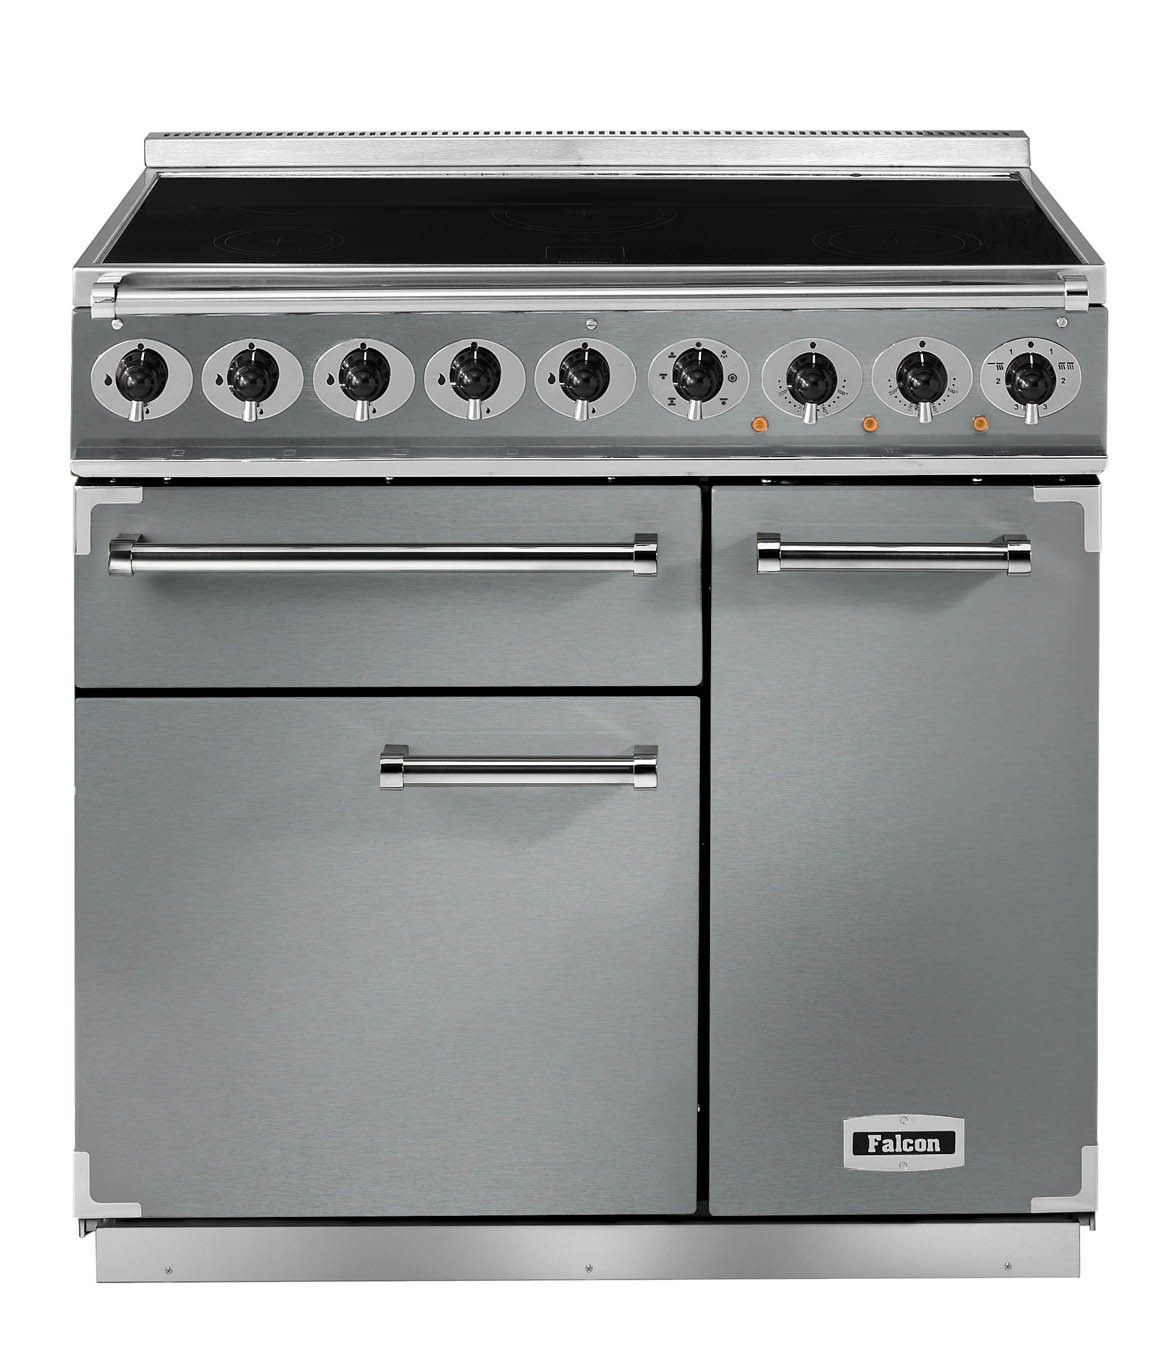 Falcon Deluxe 900 Induction Stainless Steel/Chrome Range Cooker ...